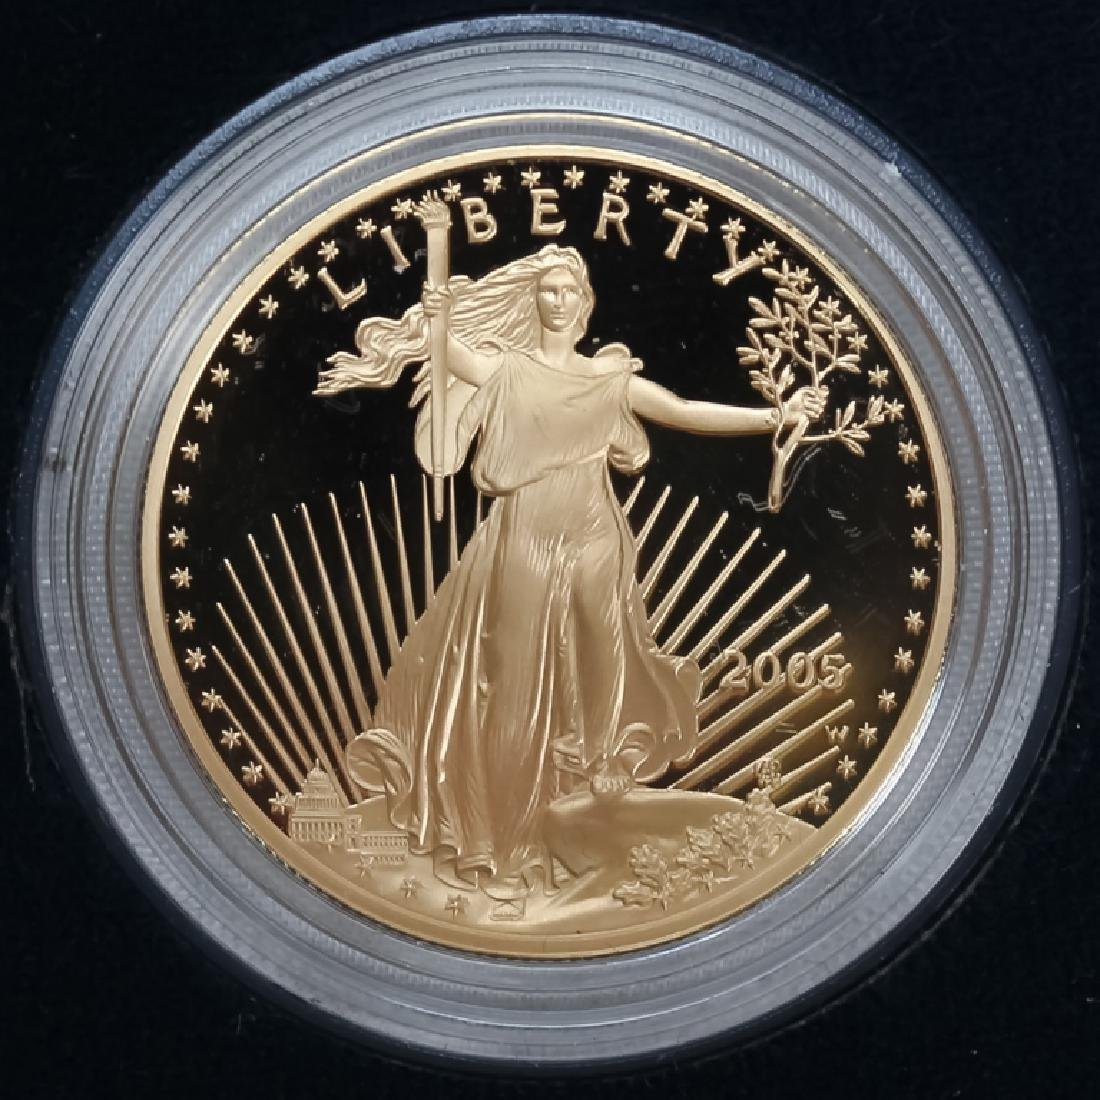 2005 1oz $50 Proof Gold American US Eagle Coin